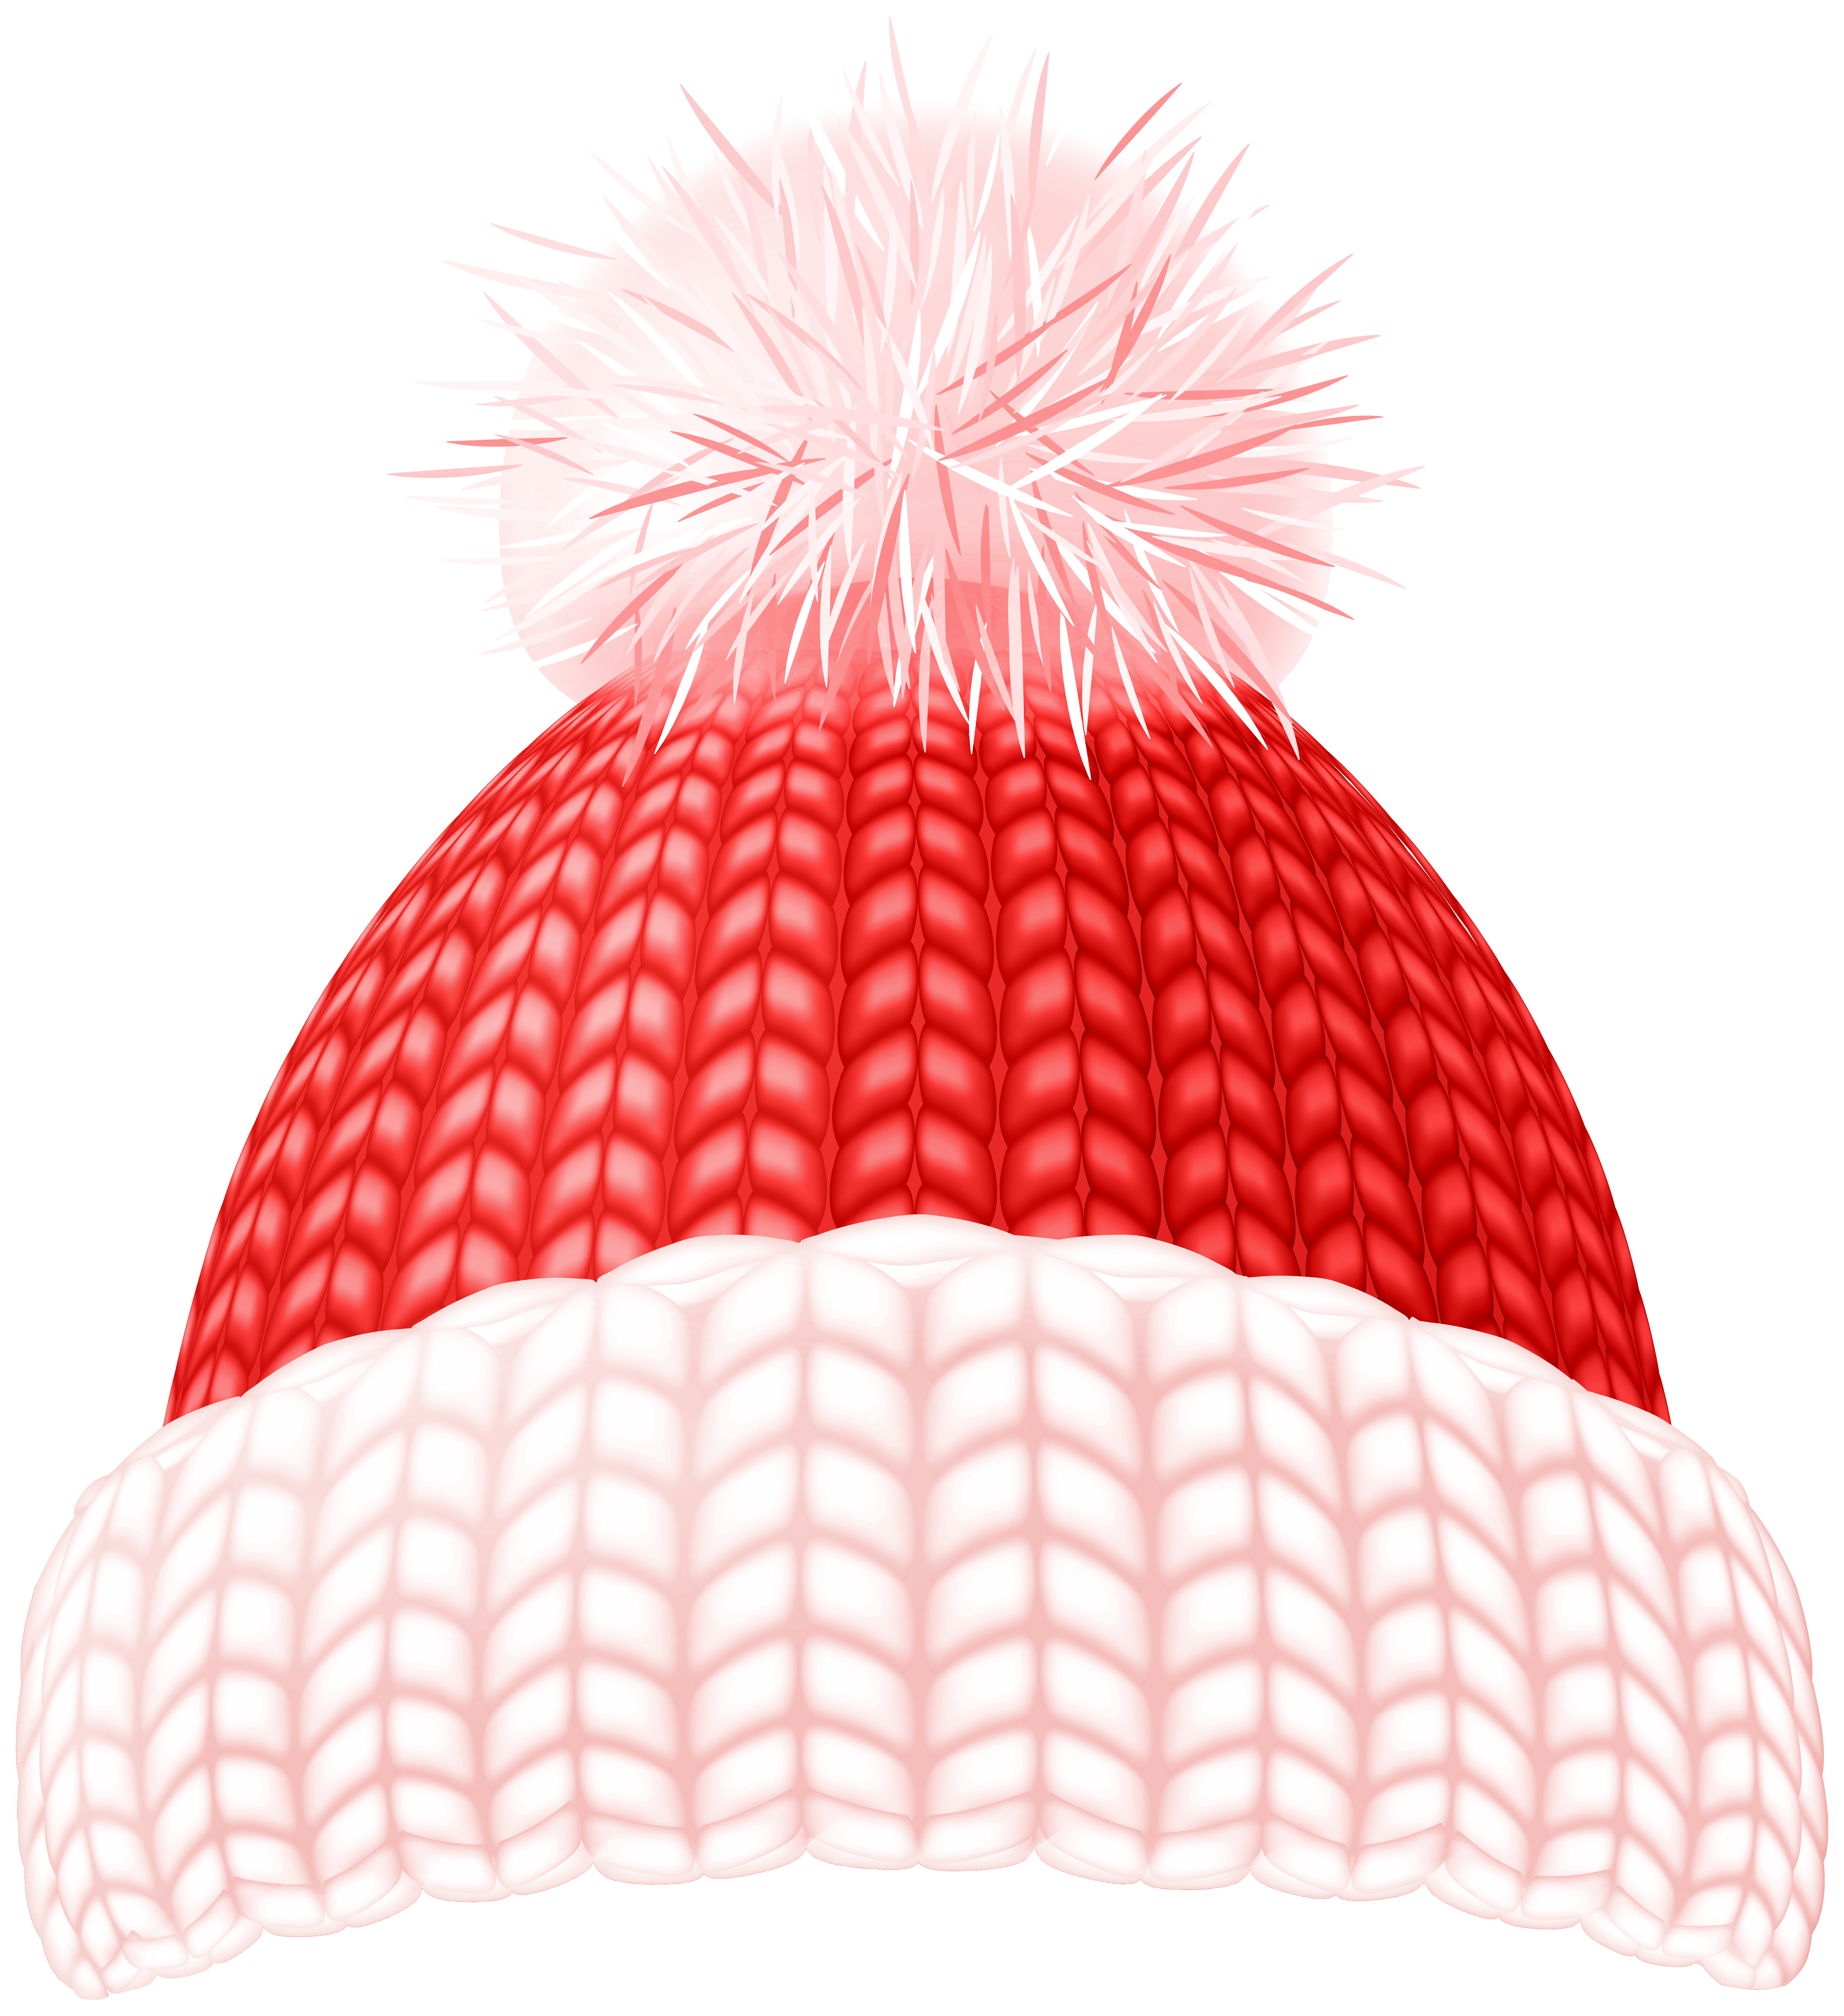 Red Winter Hat Clip Art Image.